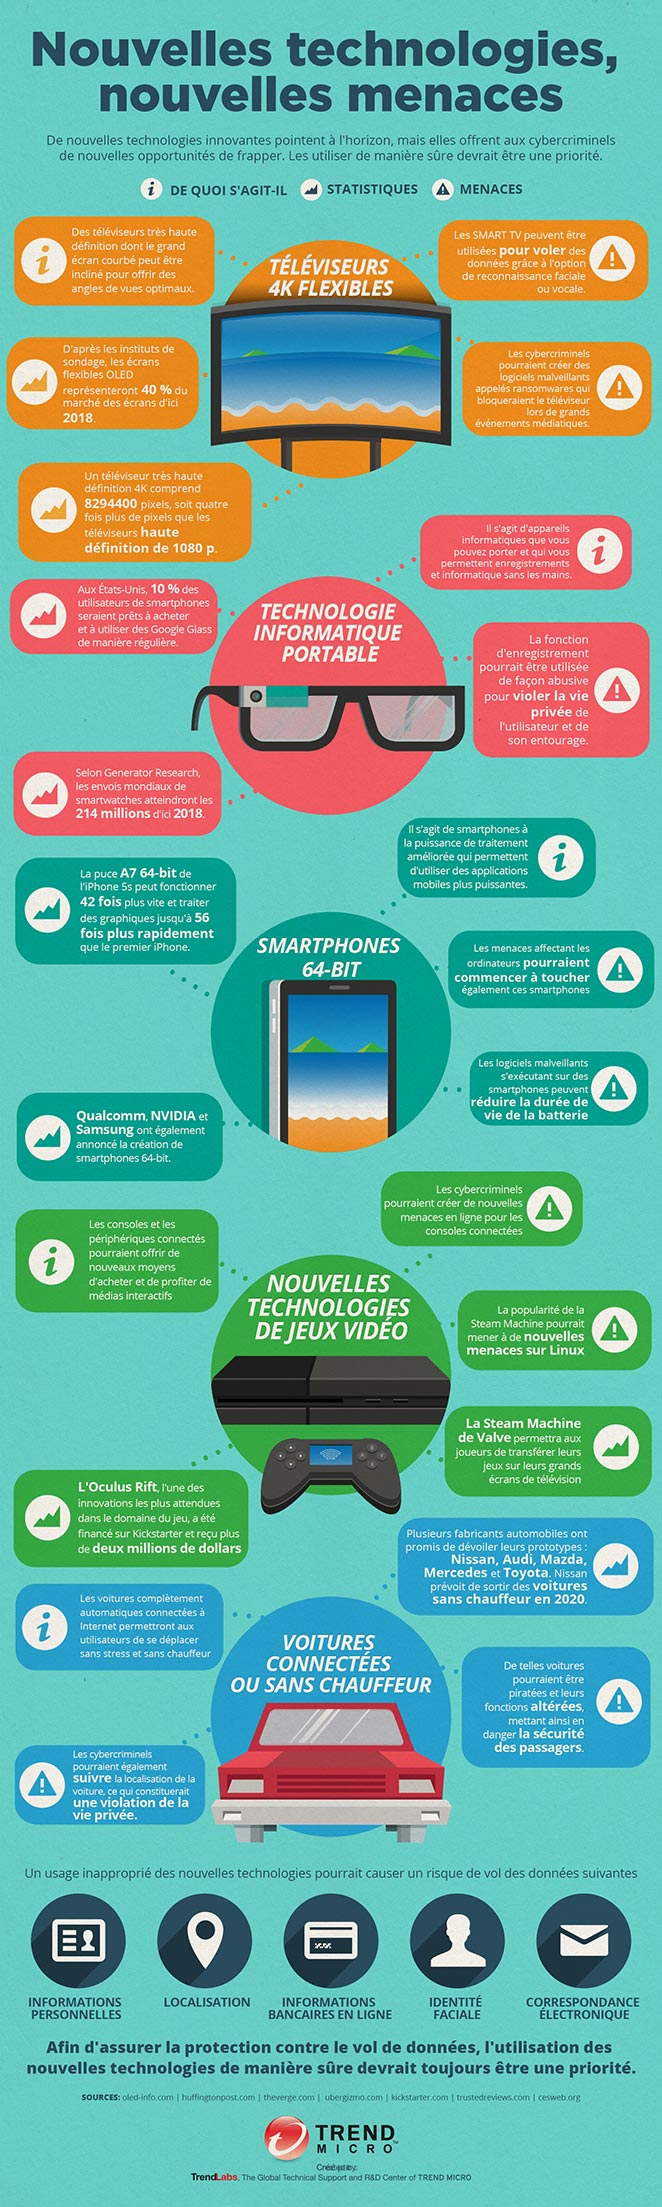 infographic-new-technologies-fr